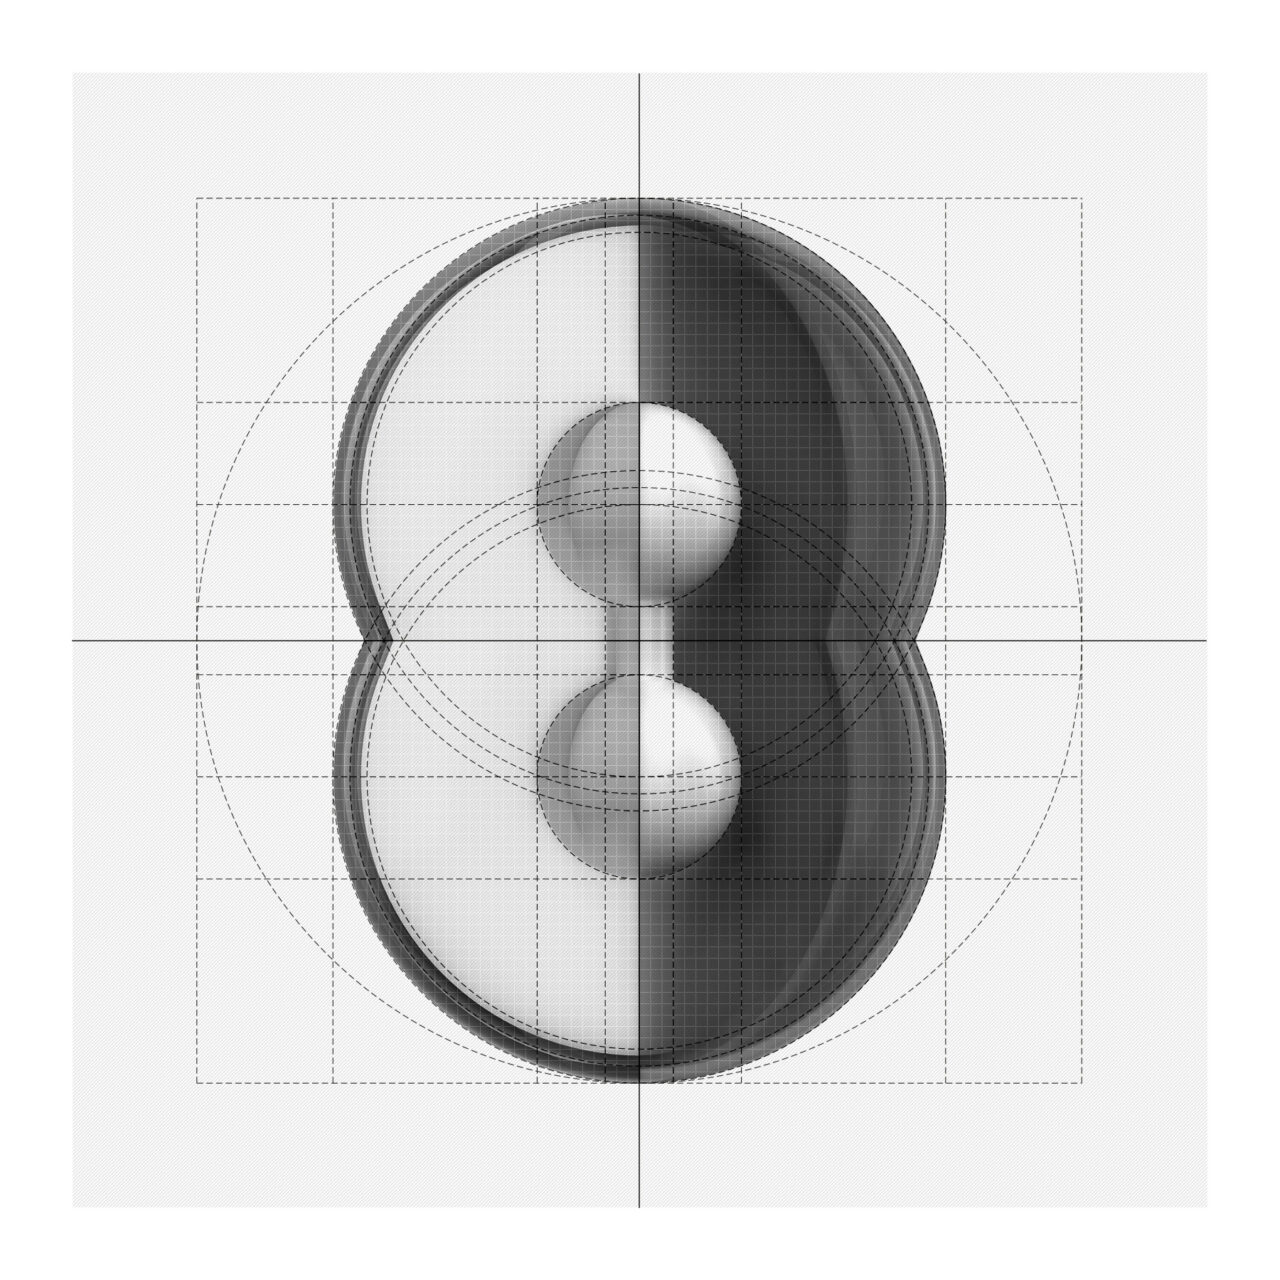 E8_logoconstruction_grid3d